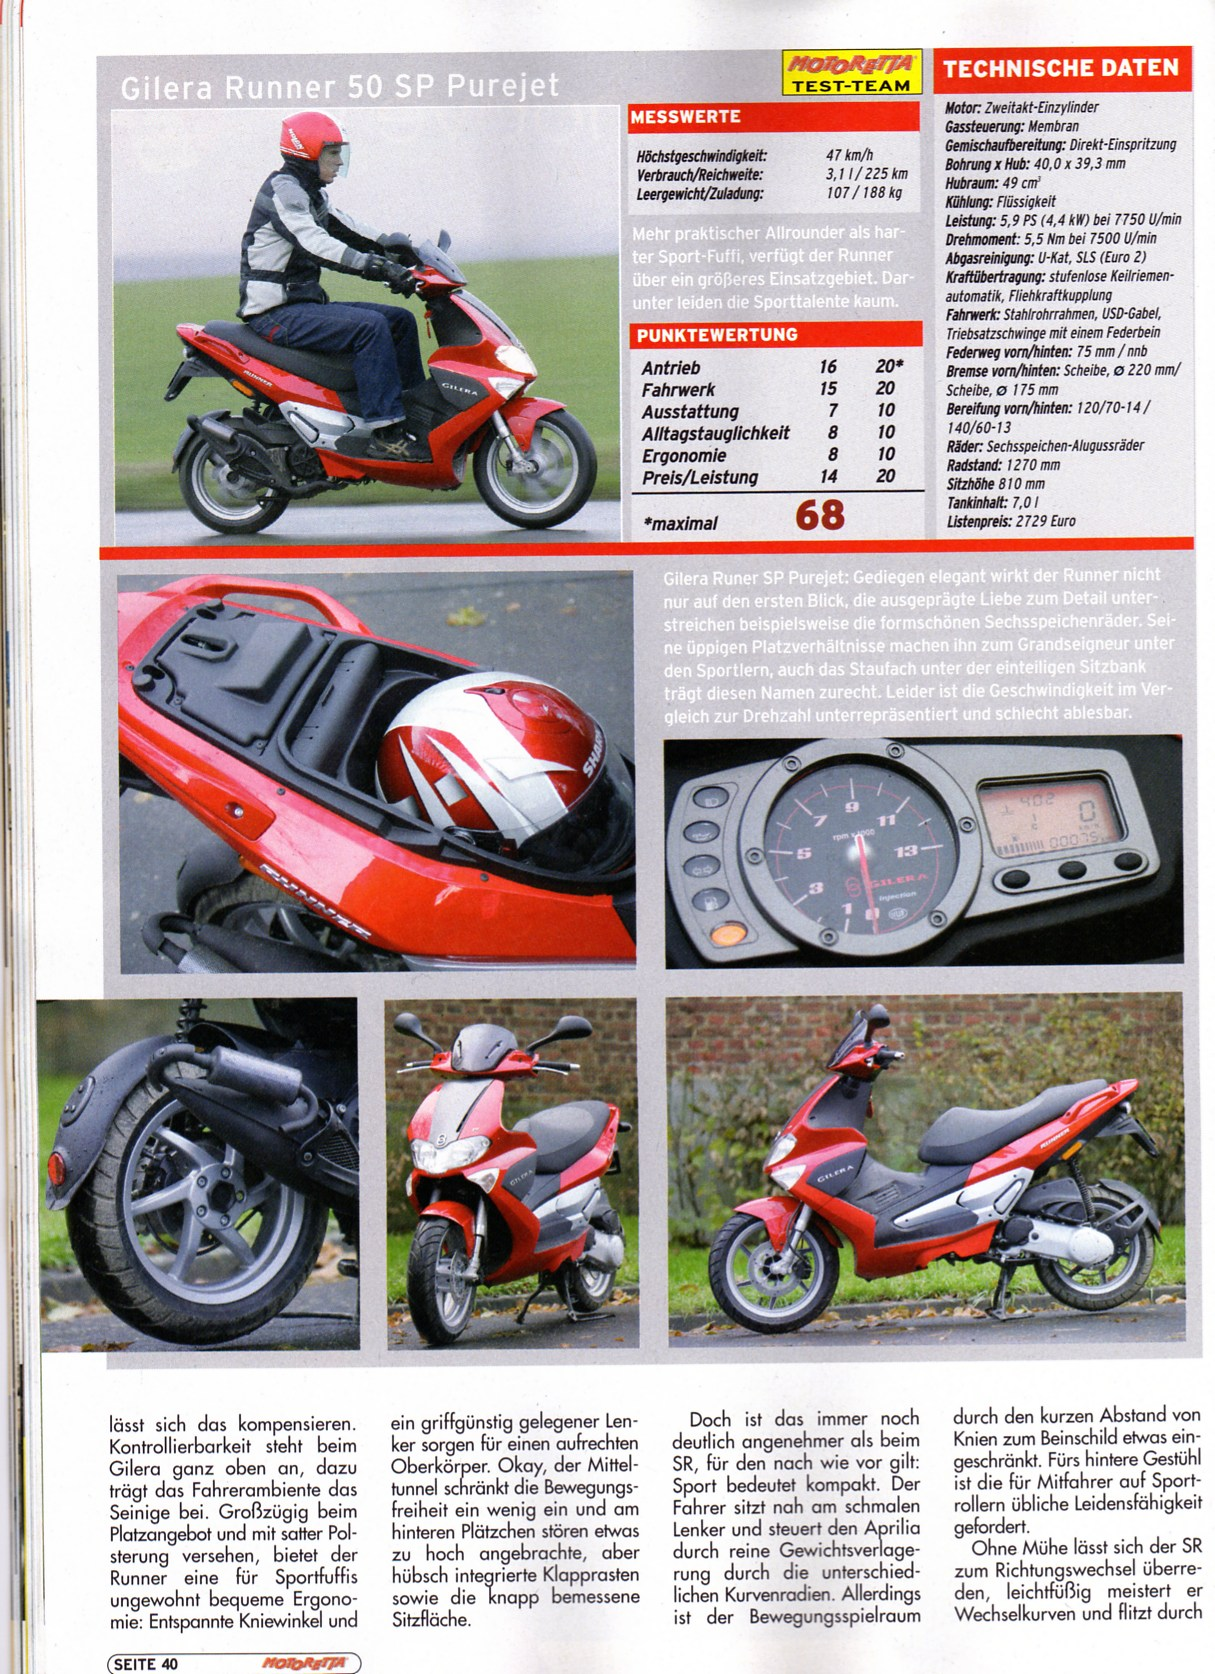 Gilera Runner Pure Jet 2004 images #155941